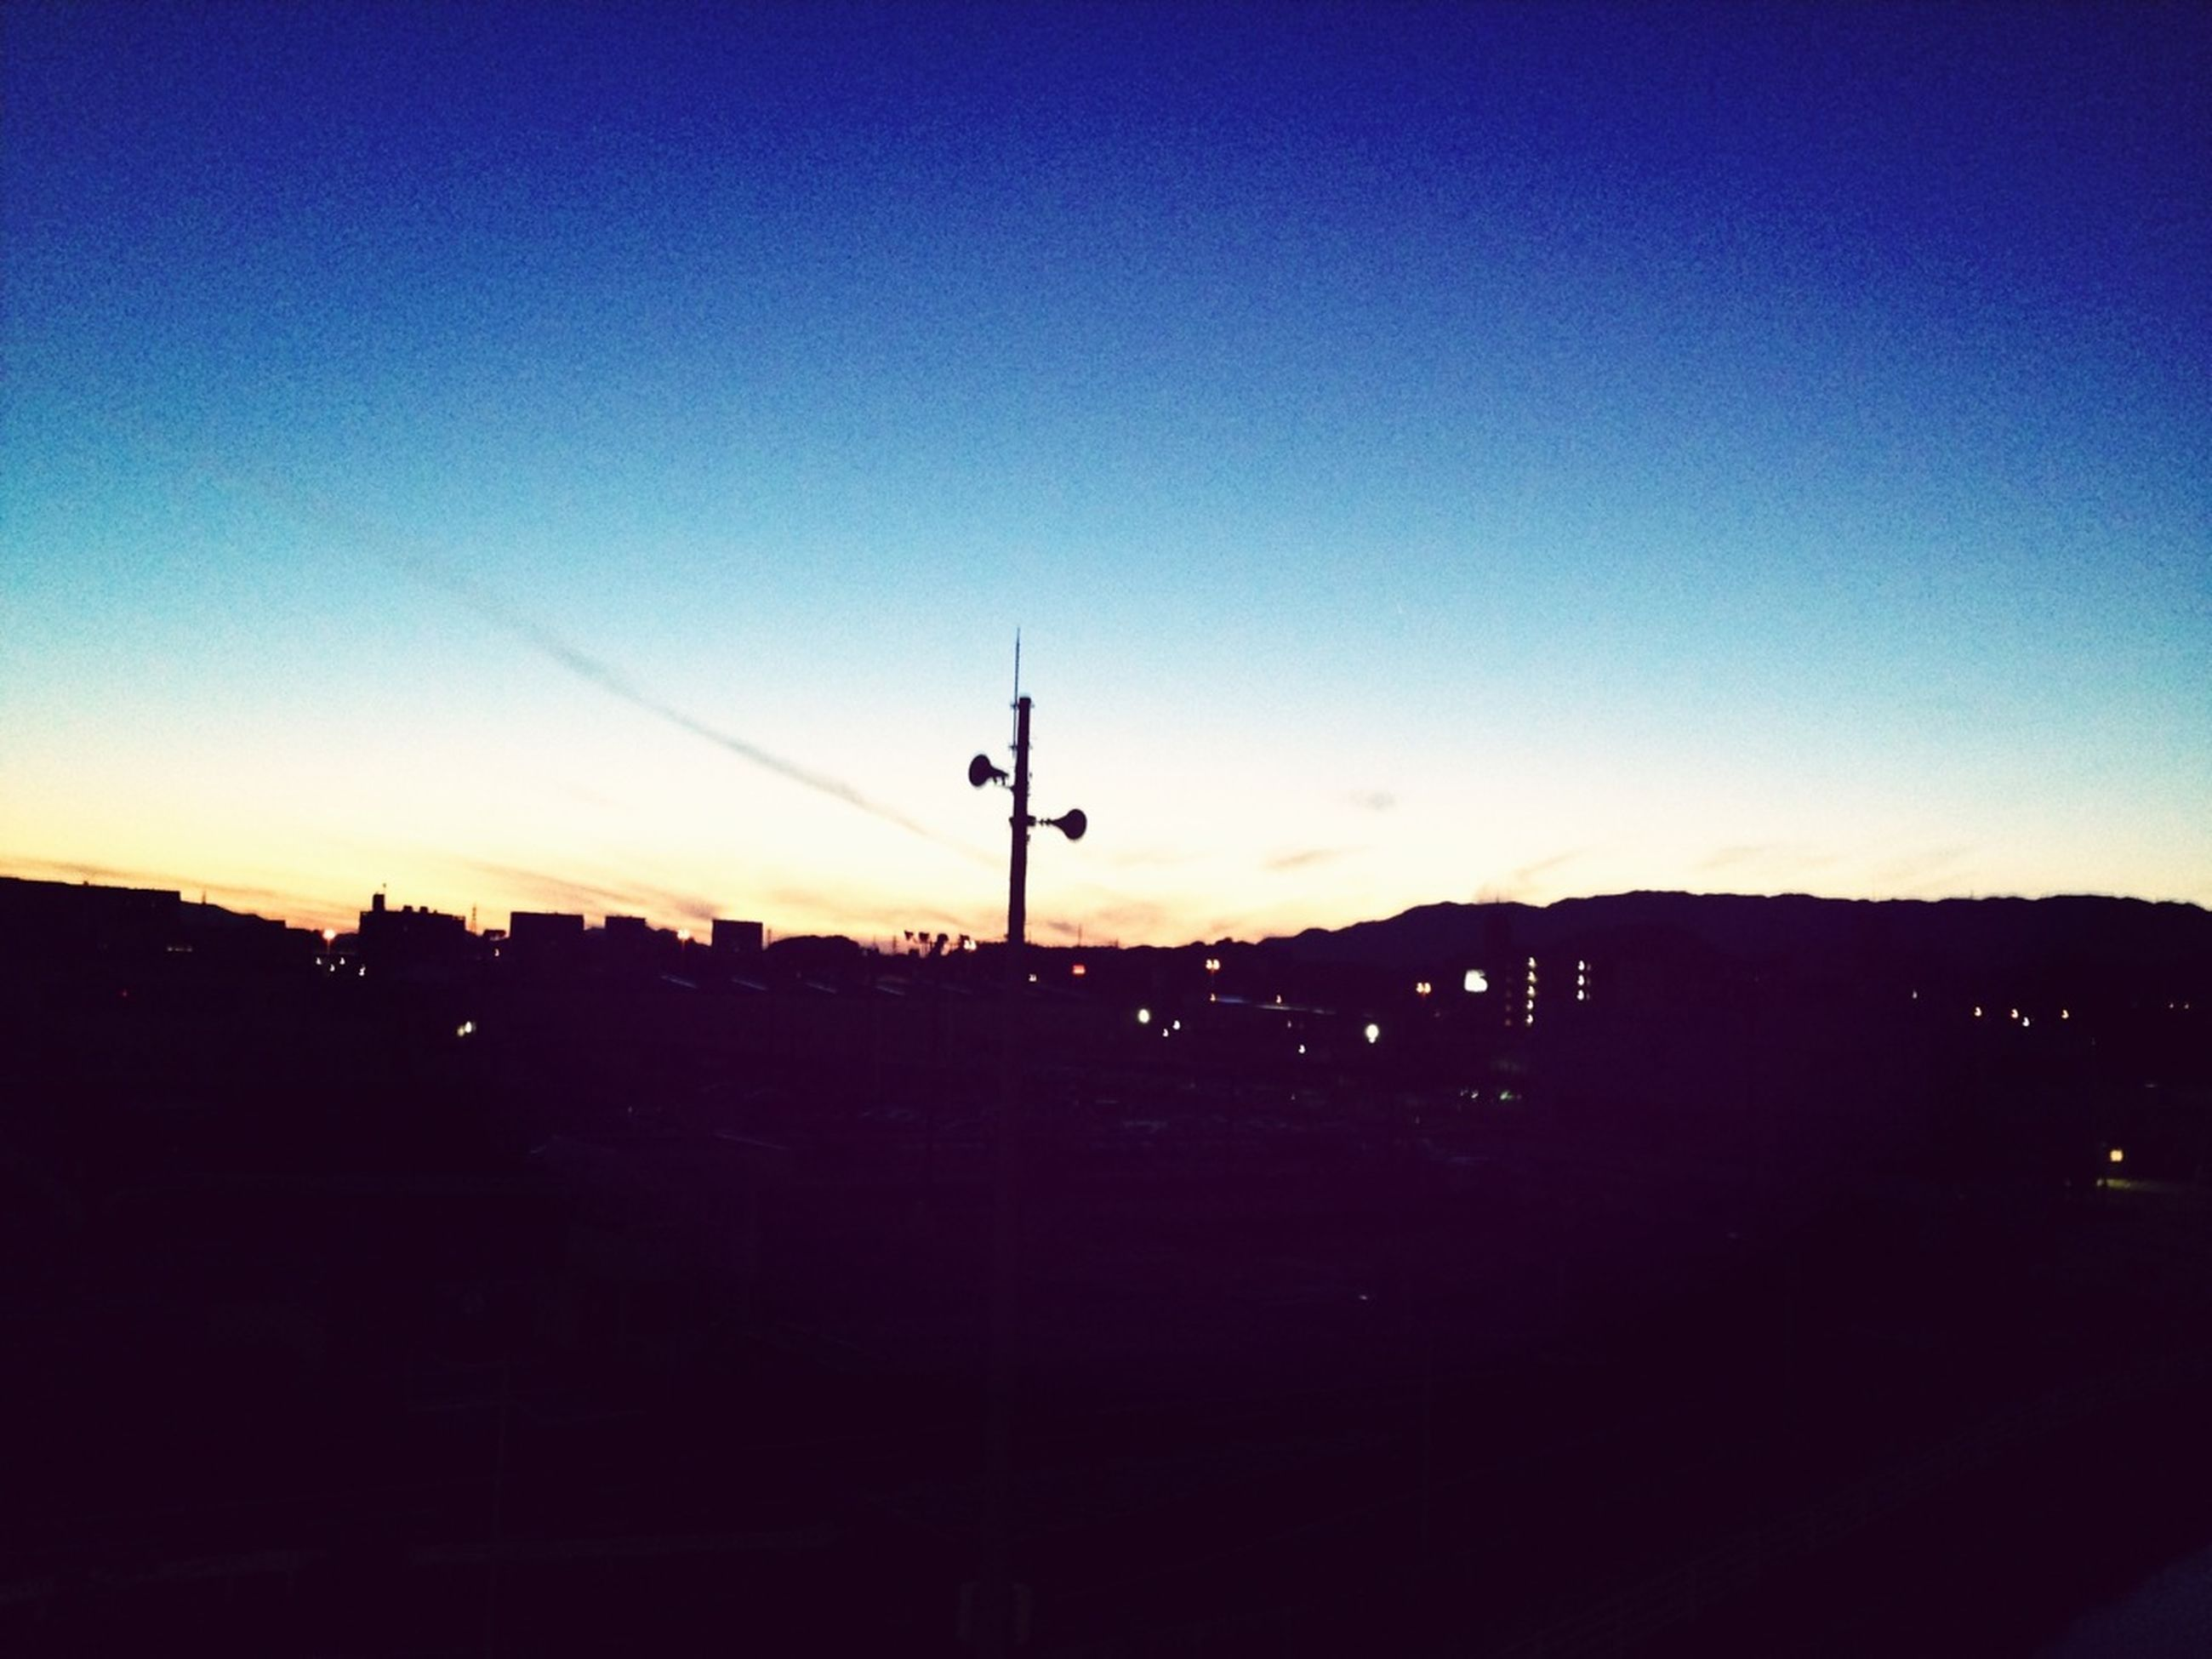 silhouette, sunset, building exterior, built structure, copy space, architecture, blue, clear sky, dusk, sky, street light, dark, outdoors, city, no people, orange color, communications tower, outline, nature, house